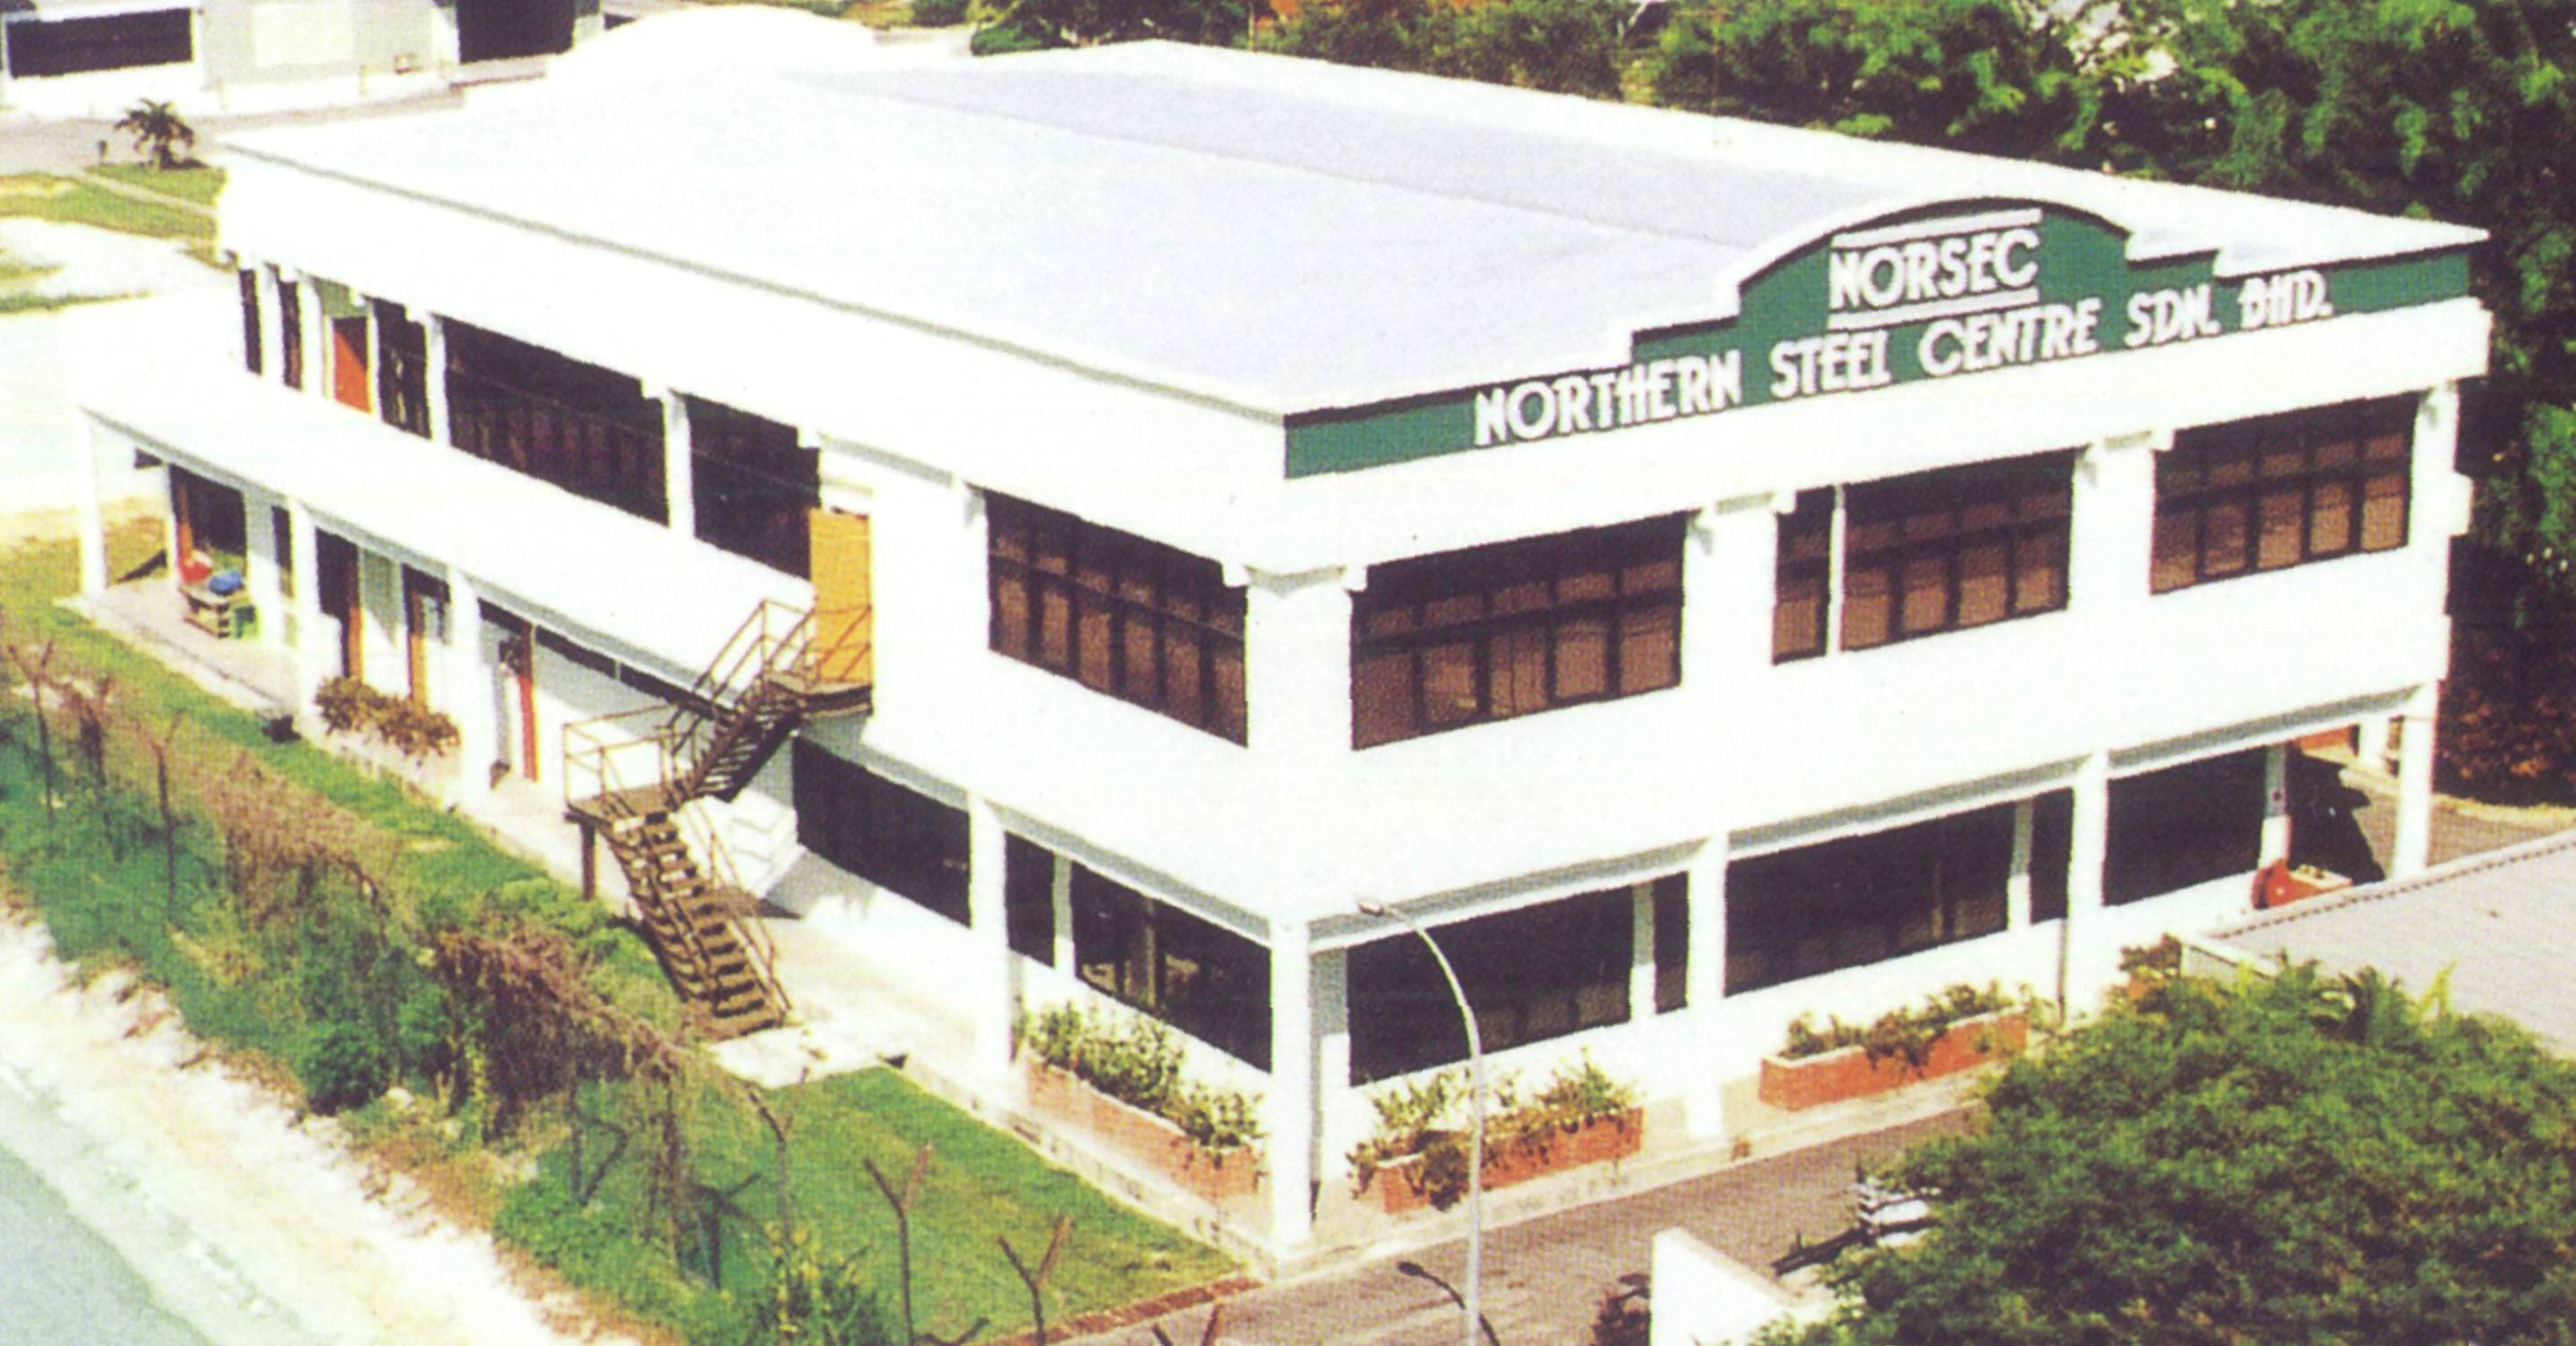 Northern Steel Office & Factory (1994)